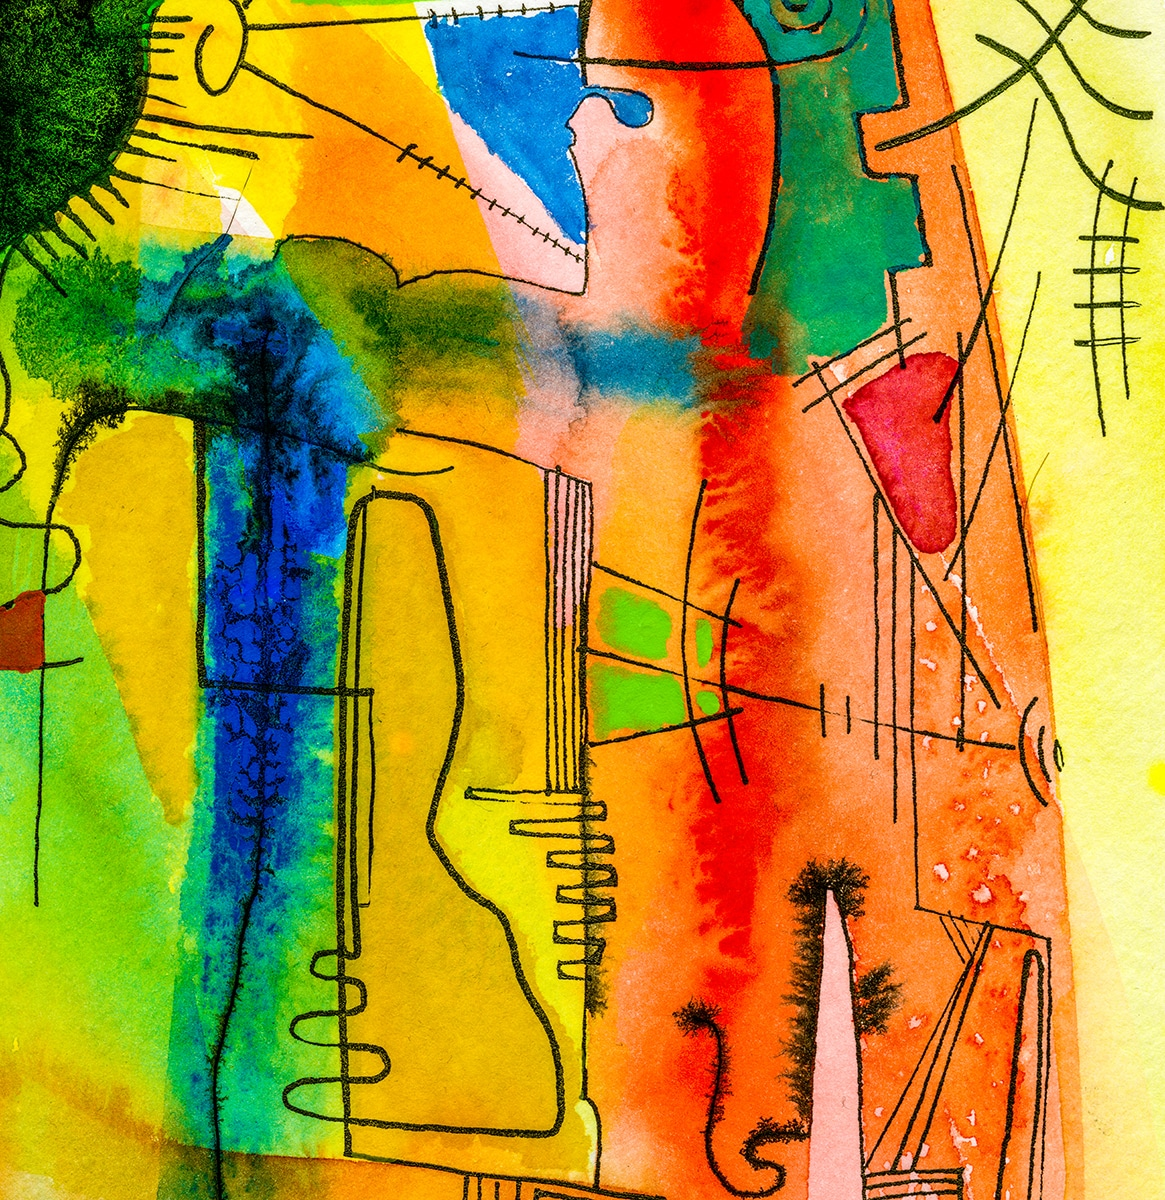 what_you_see_as_abstract_is_my_self_unobstructed_detail_by_gregory_beylerian